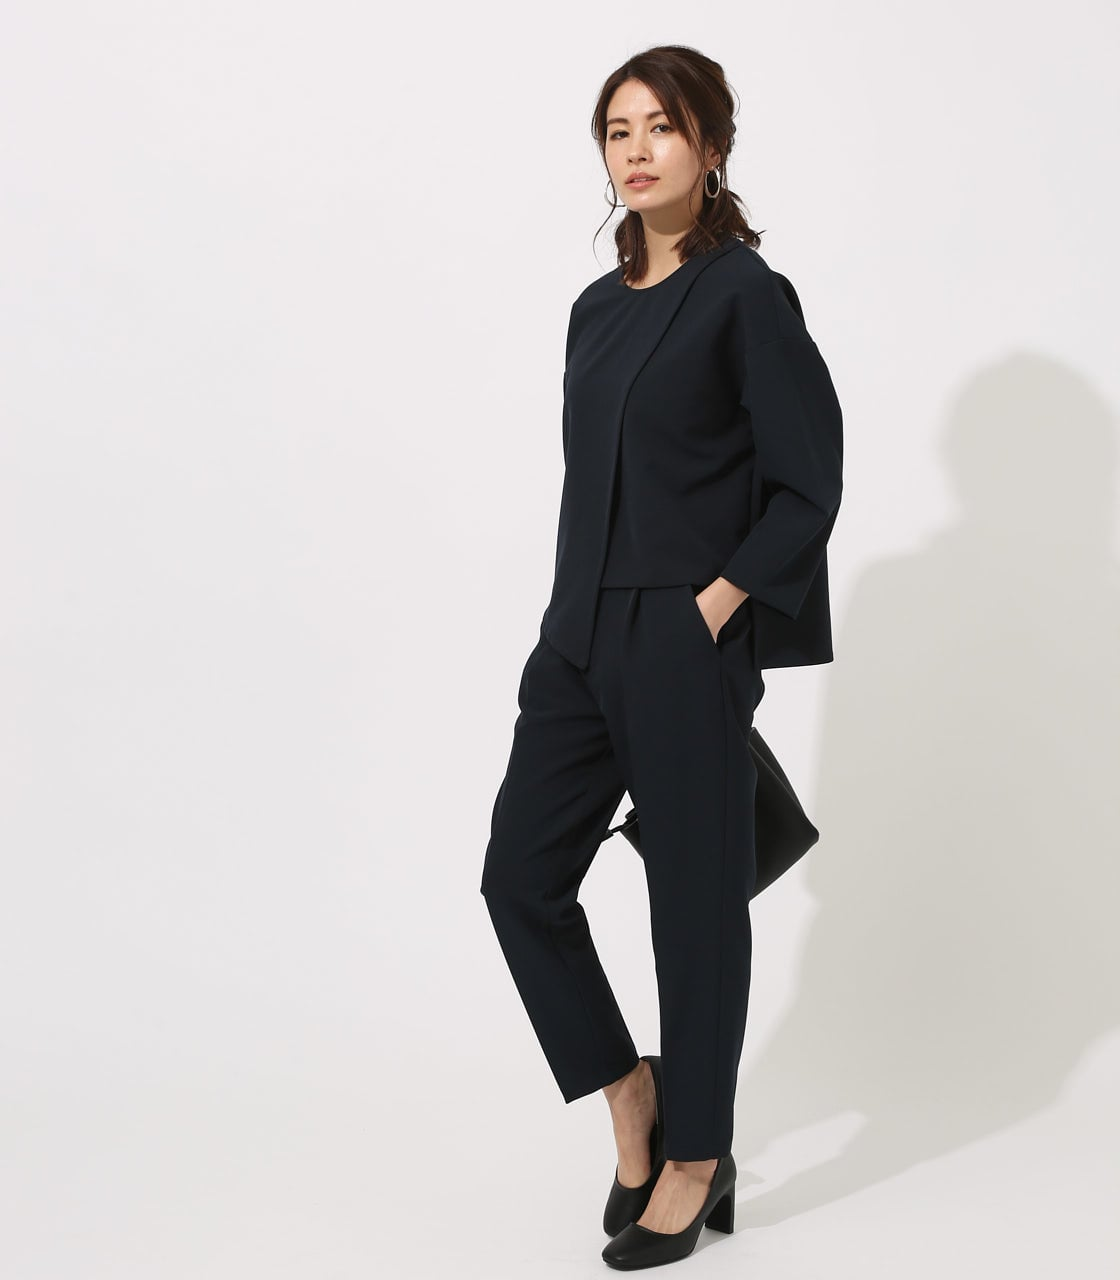 【AZUL BY MOUSSY】LAYERED IRREGULAR HEM TOPS 詳細画像 NVY 4